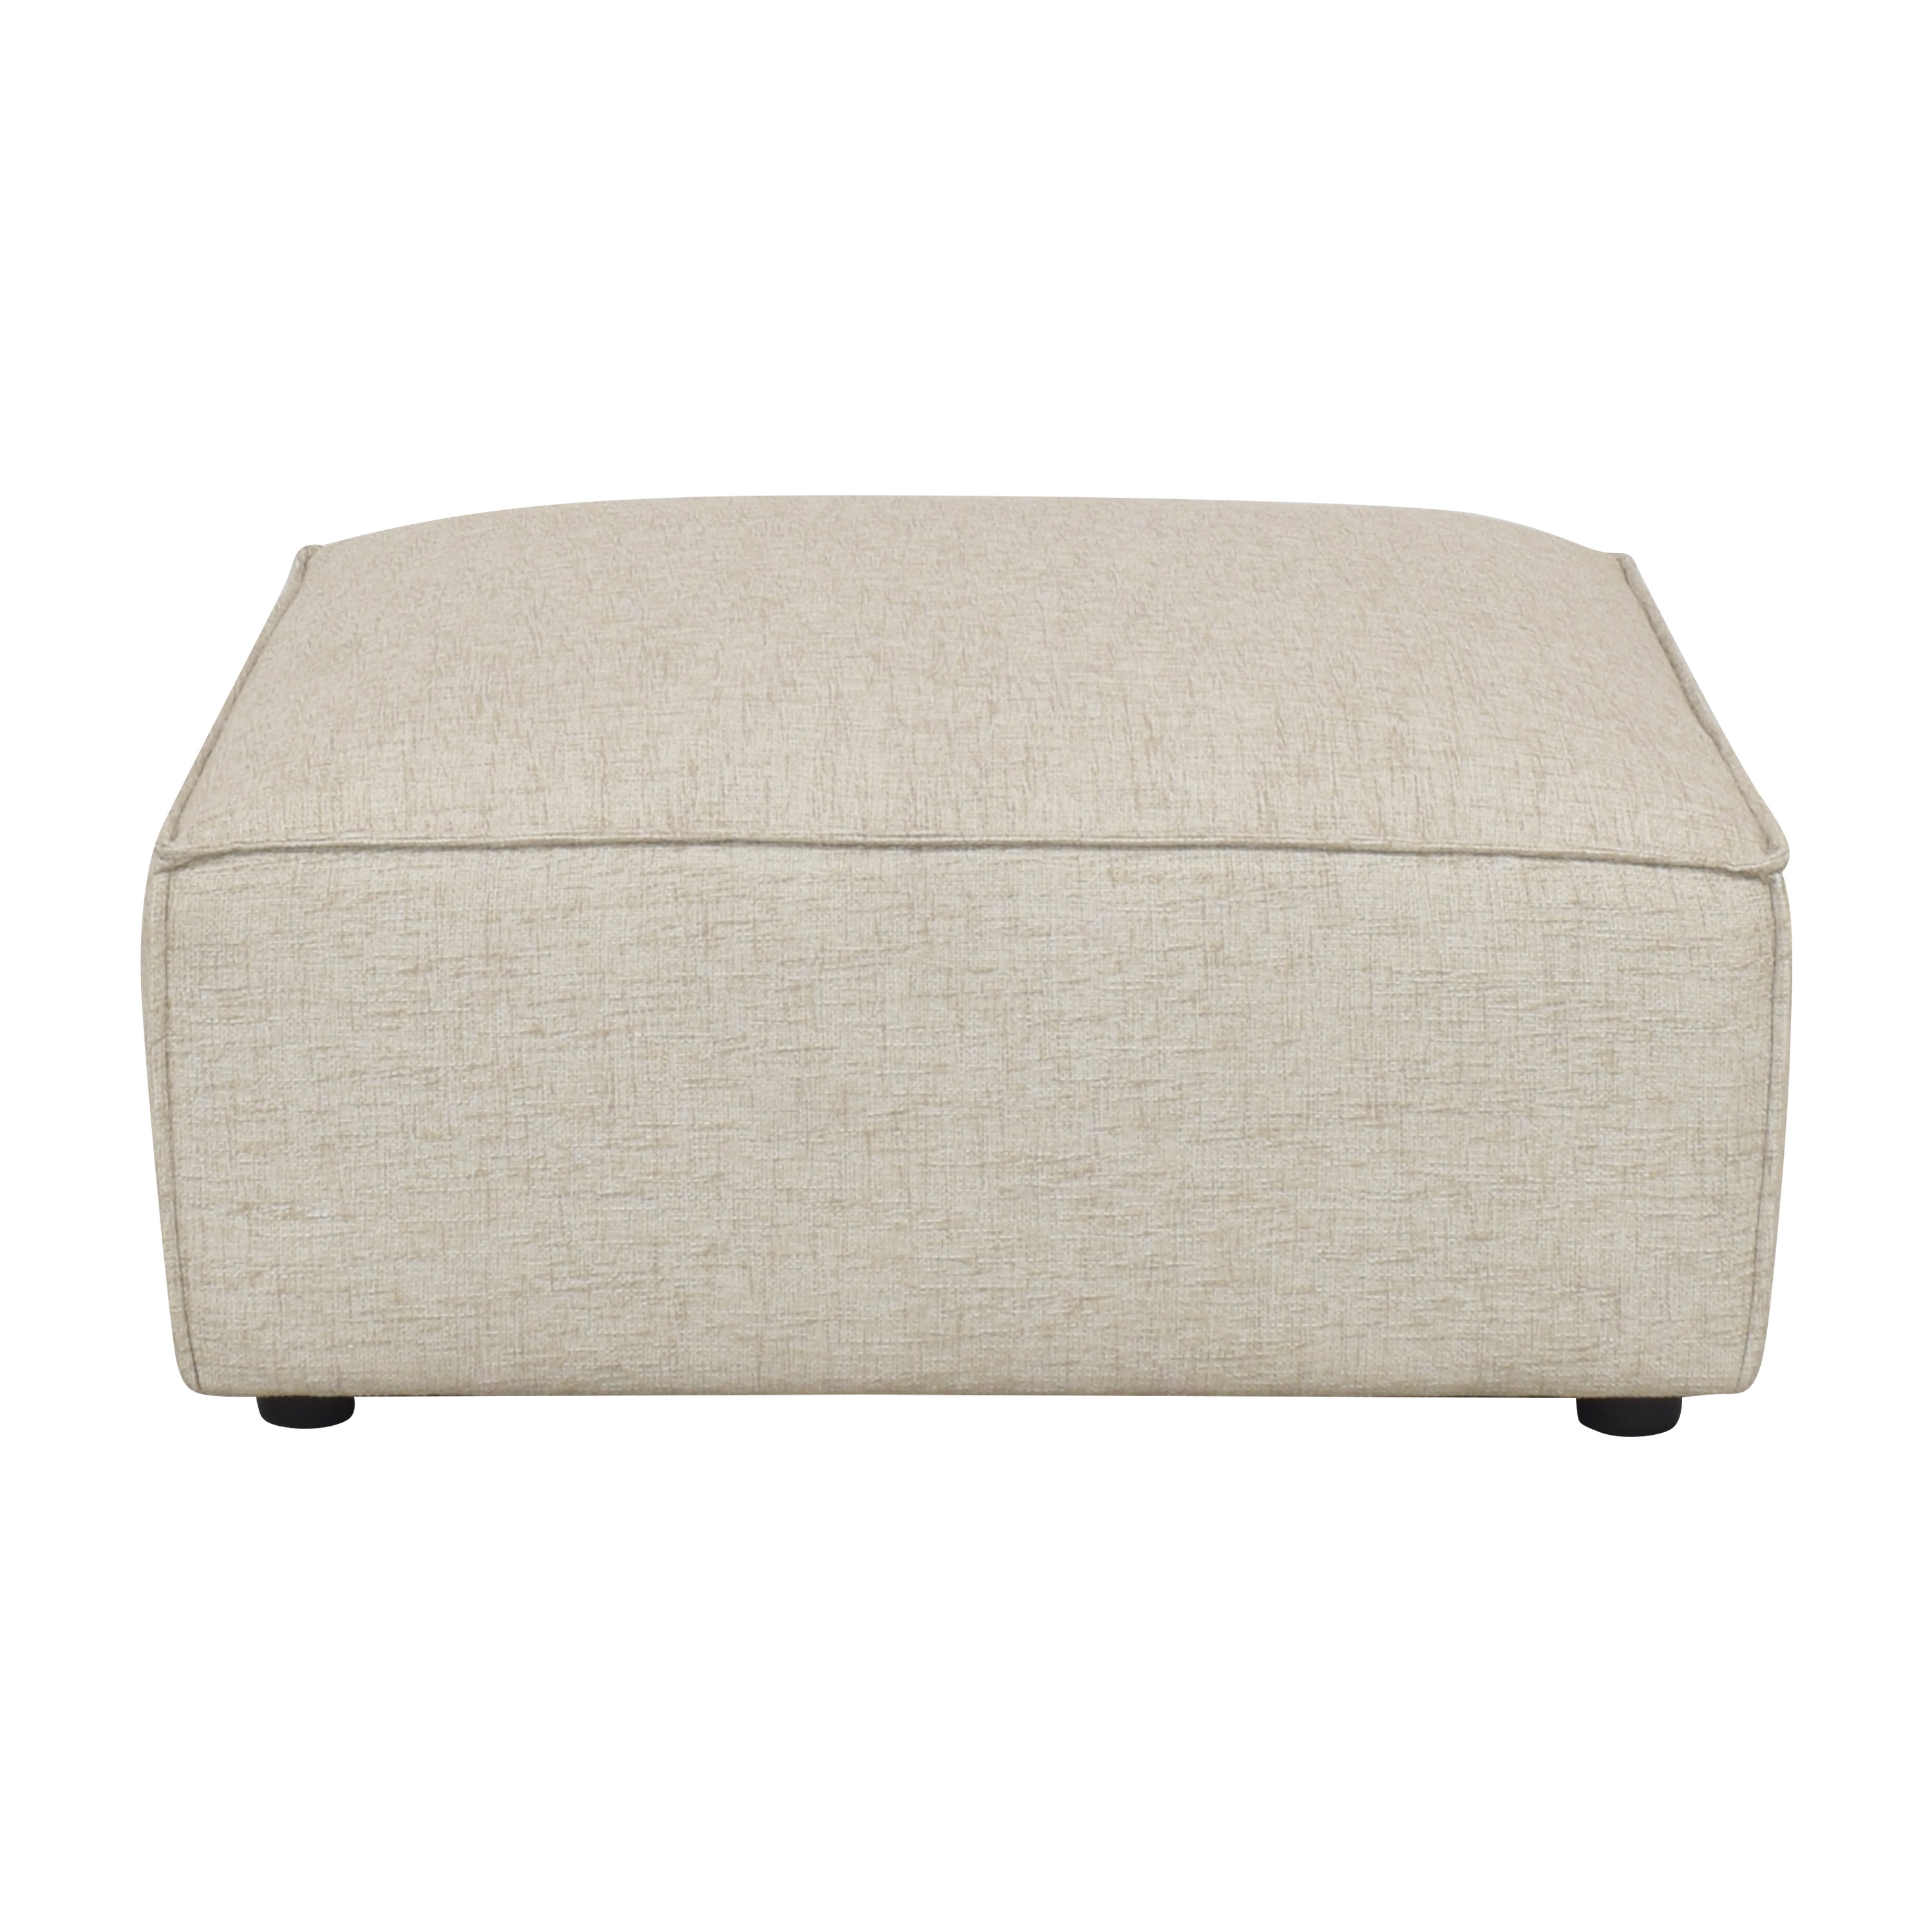 buy Interior Define Gray Ottoman Interior Define Ottomans